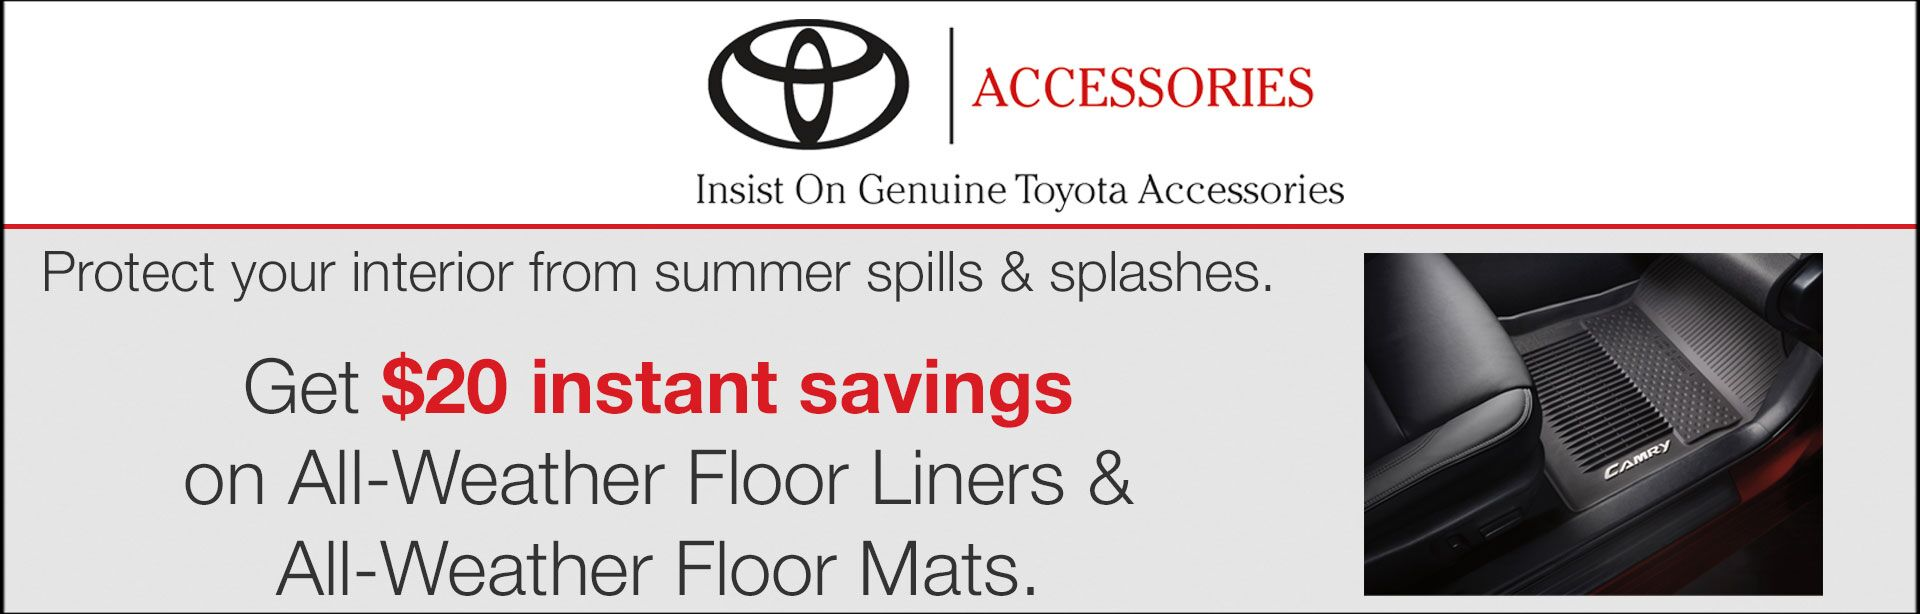 Toyota Accessories Promotion